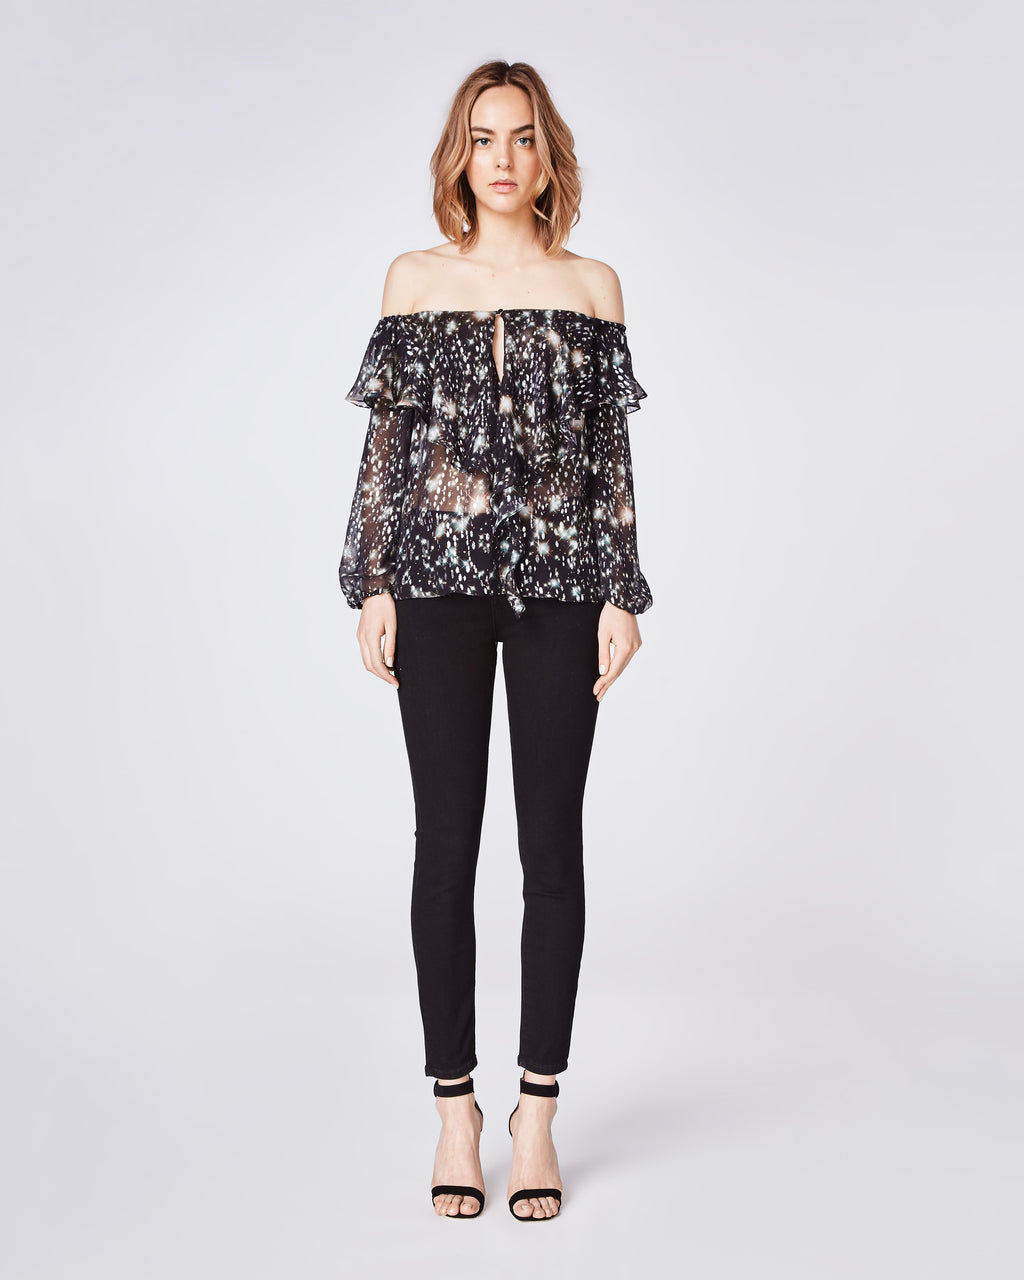 BH10393 - MIDNIGHT SKY OFF THE SHOULDER RUFFLE BLOUSE - tops - blouses - The season calls for festivities with this off the shoulder ruffle party blouse. It has the perfect amount of silky drapiness with printed midnight sky accents. Fitted around shoulders with elactic and botton front closure.